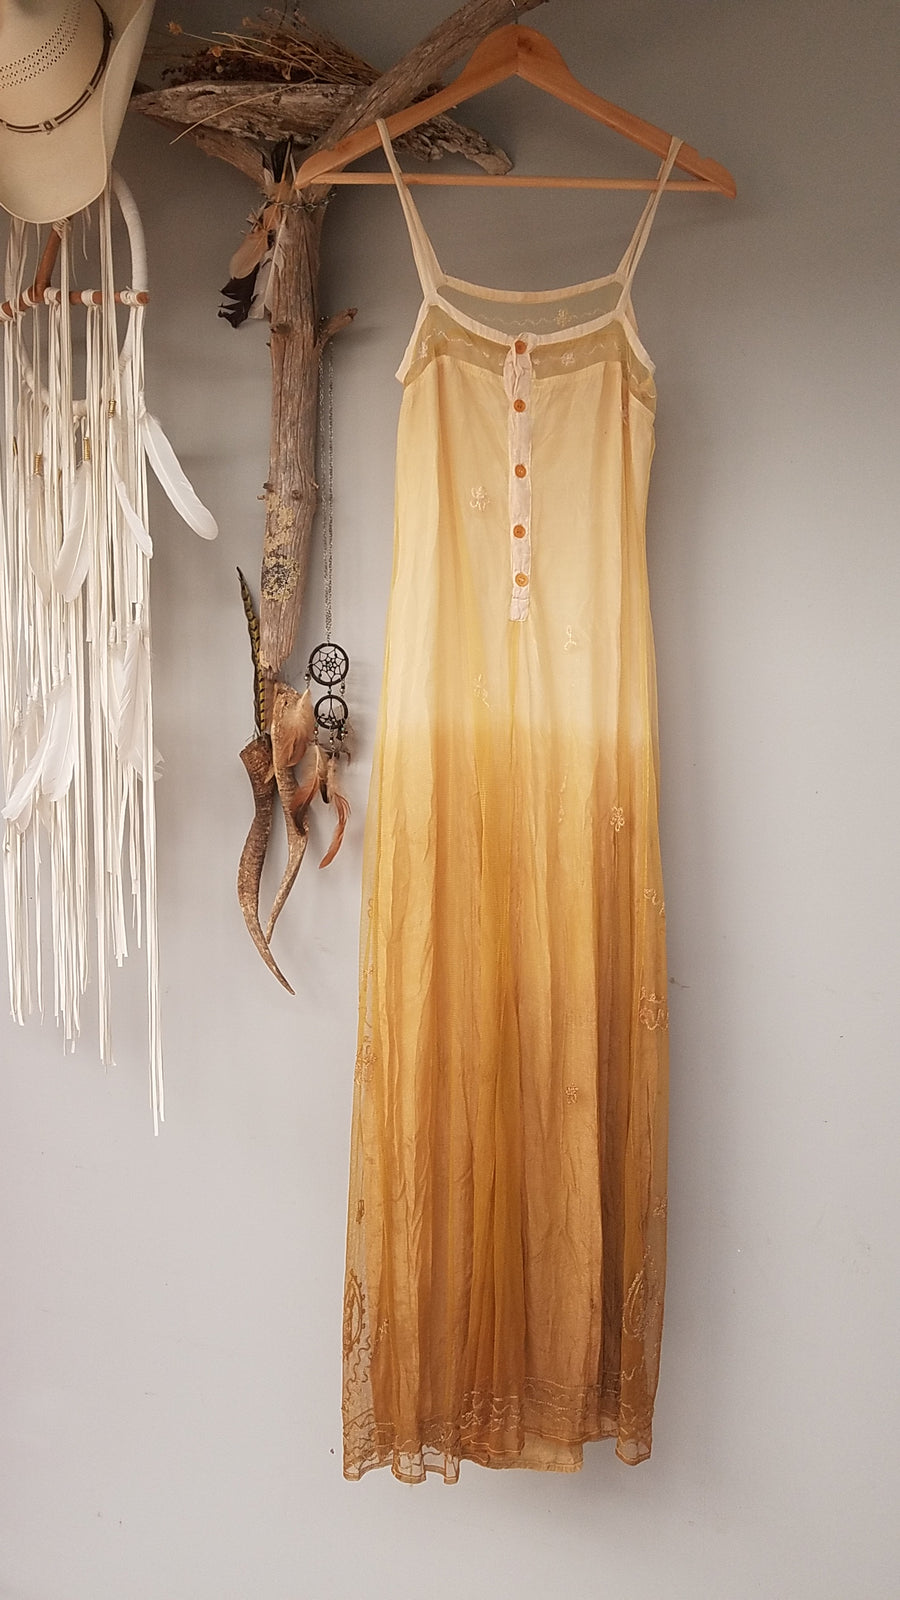 SUPERB BOHO HIPPY - MADE in INDIA - EMBROIDERED MAXI DRESS by 'INDIAN ROSE' SM